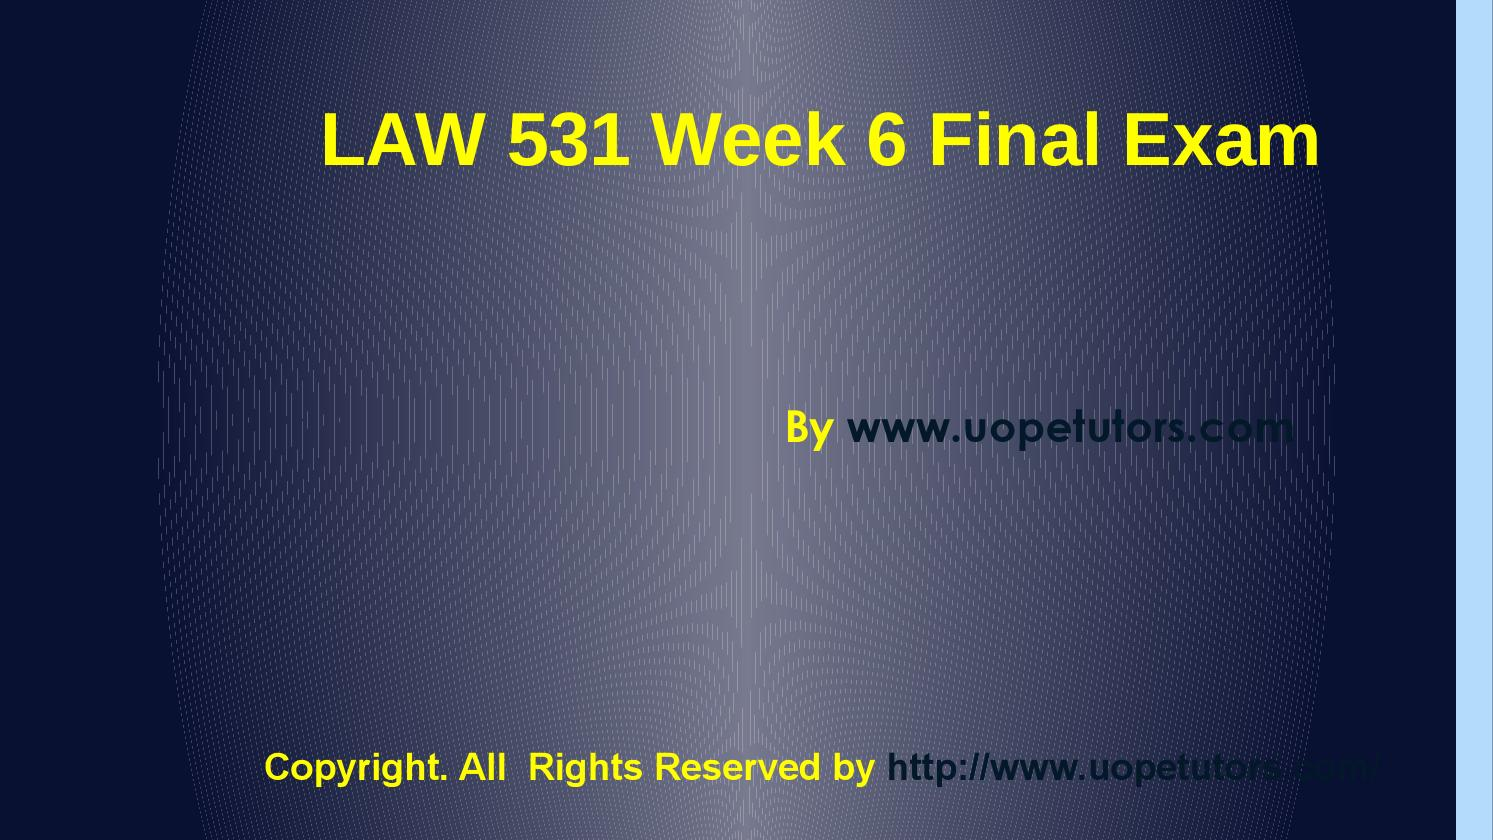 business regulation law 531 .